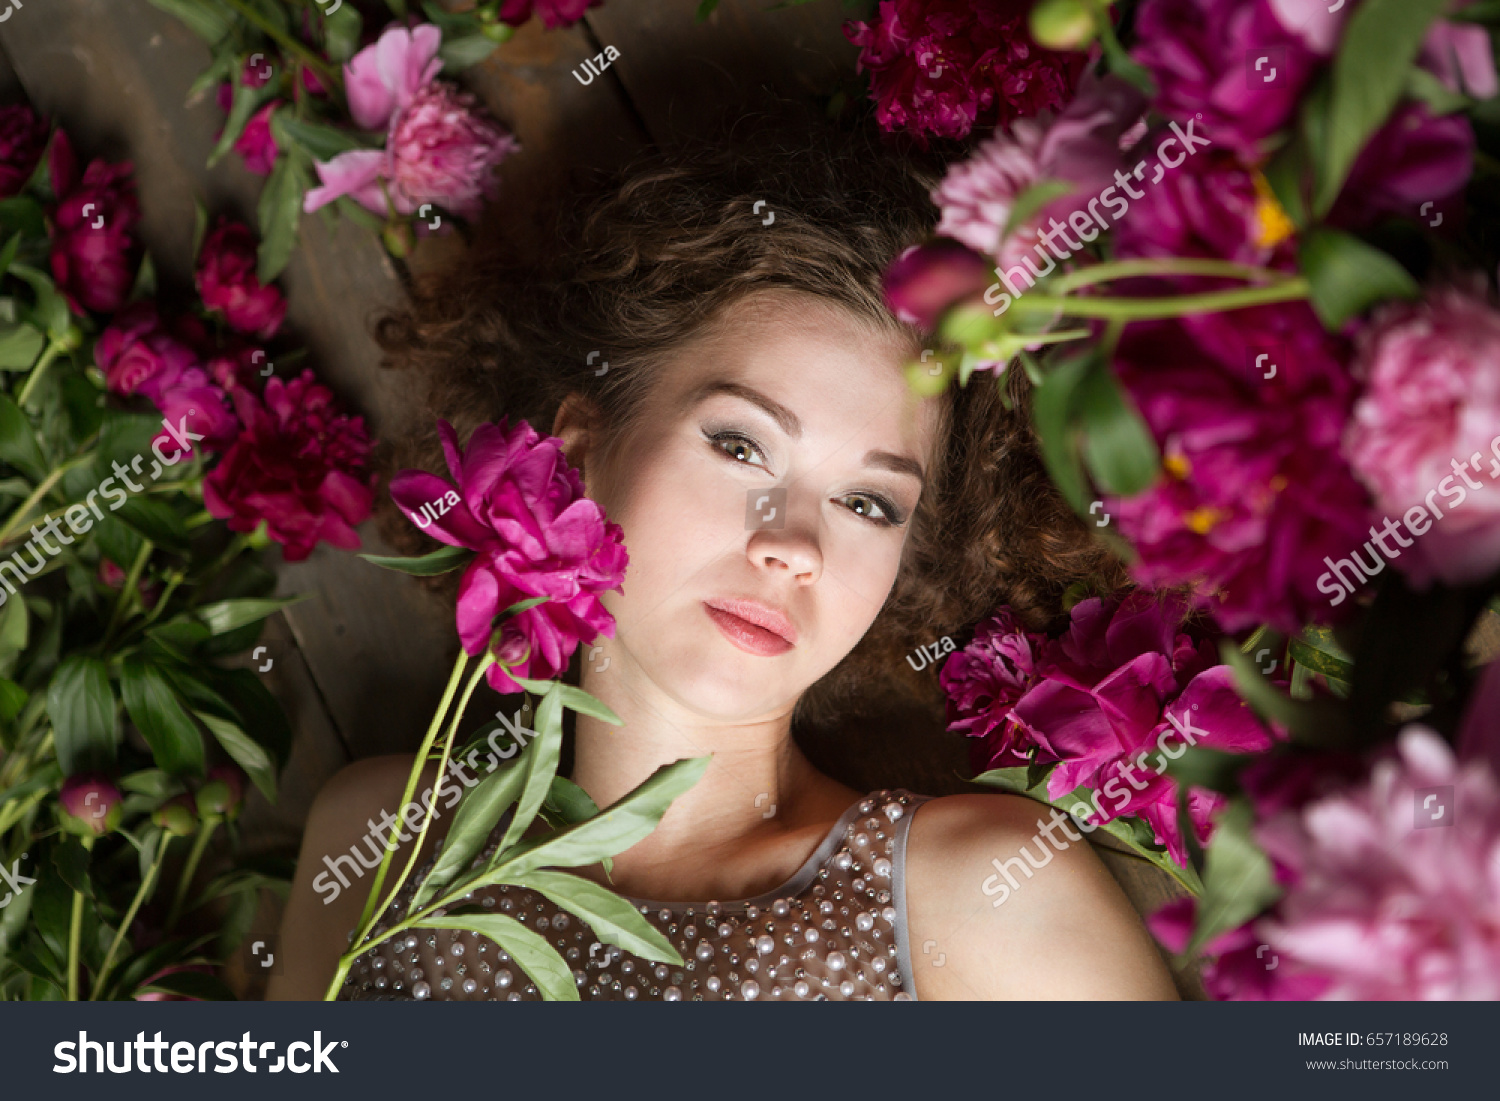 Beautiful Girl With Flowers Beauty With A Beautiful Professional